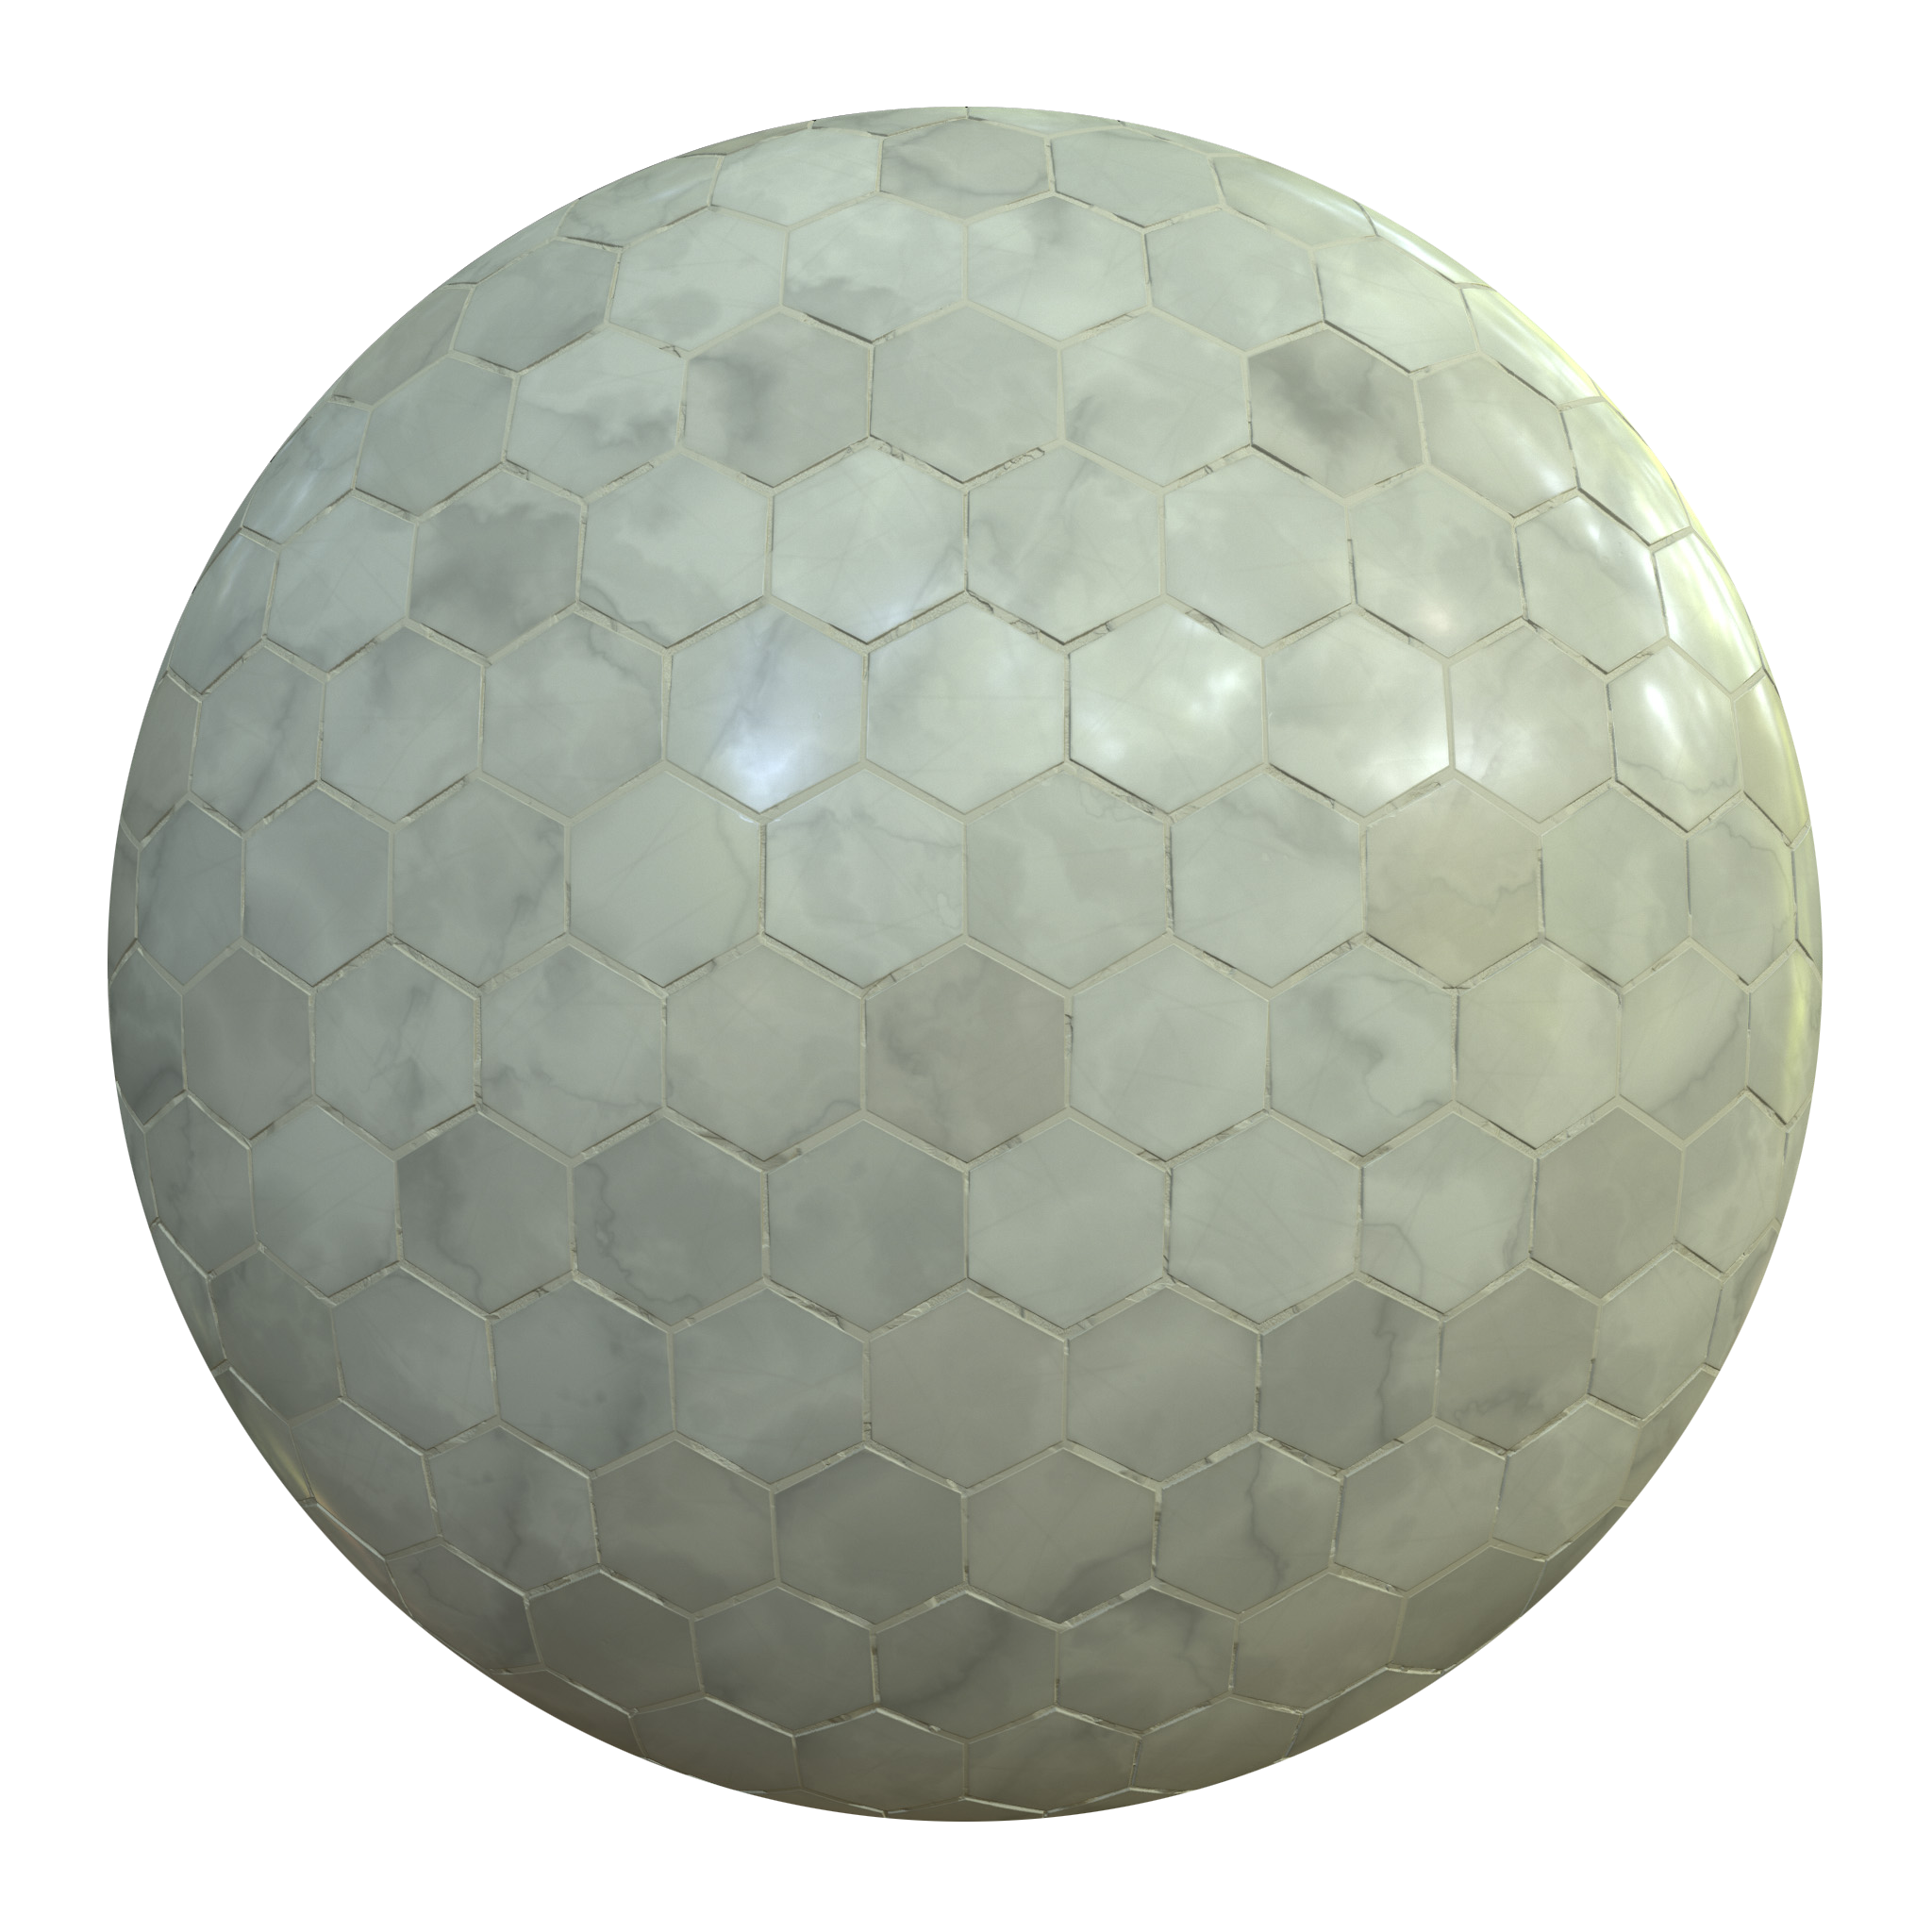 hexagonal_update_png.png